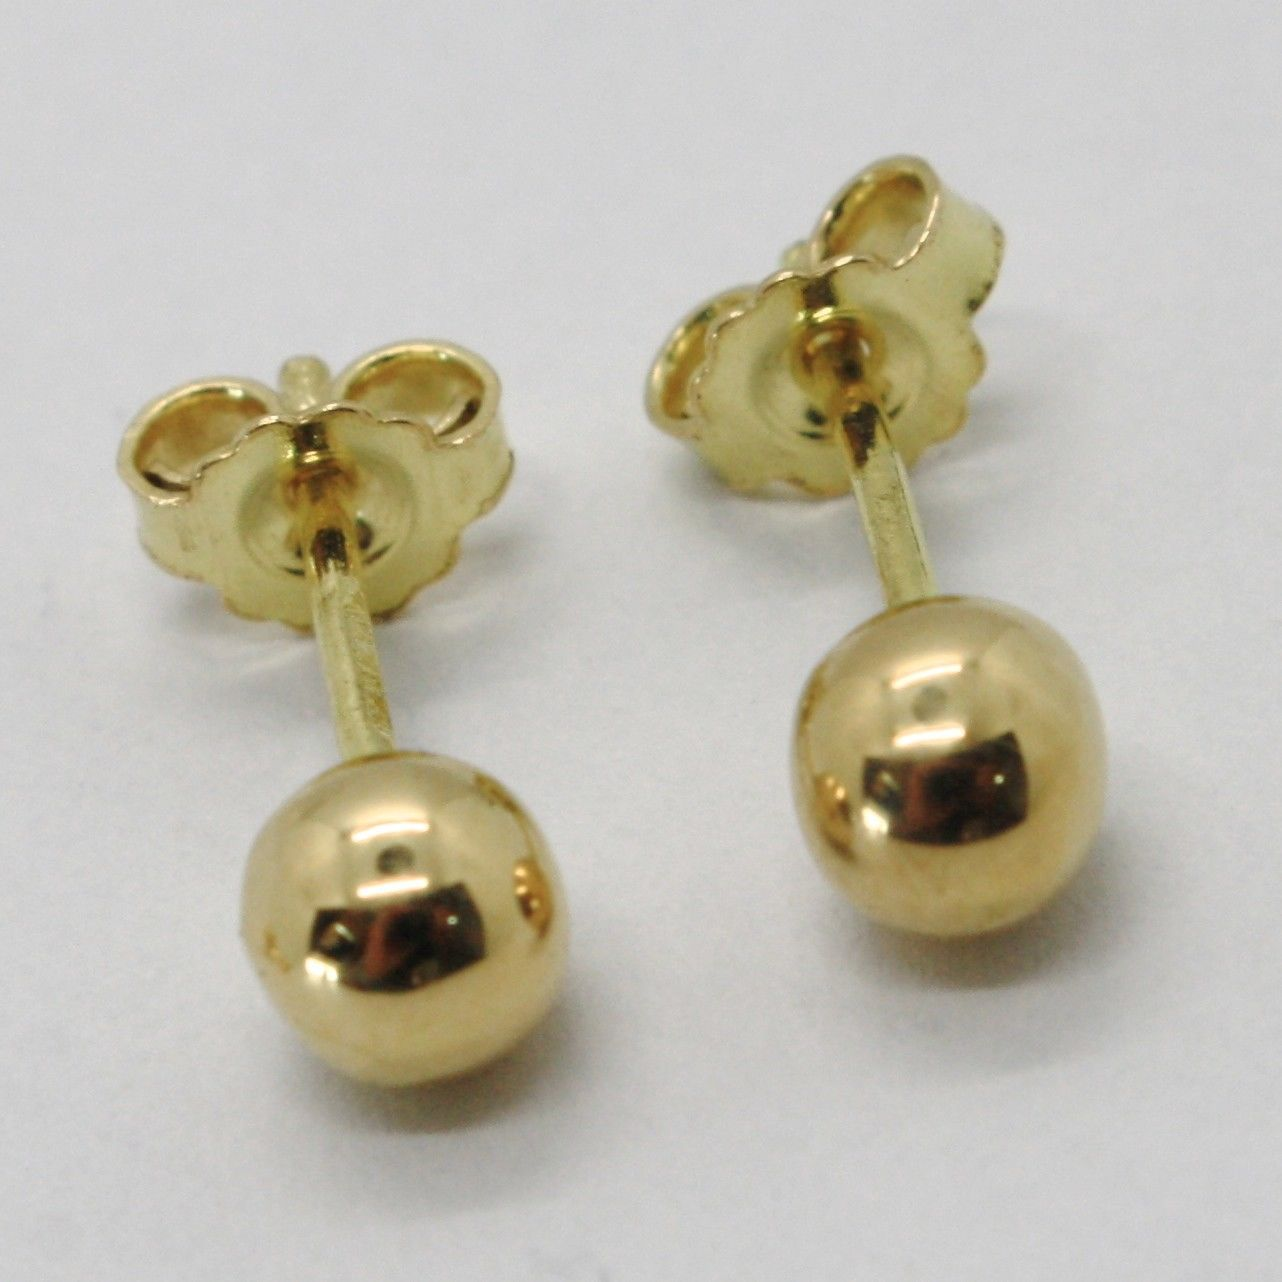 18K YELLOW GOLD EARRINGS WITH BALL BALLS SPHERES SPHERE DIAM. 5 MM MADE IN ITALY